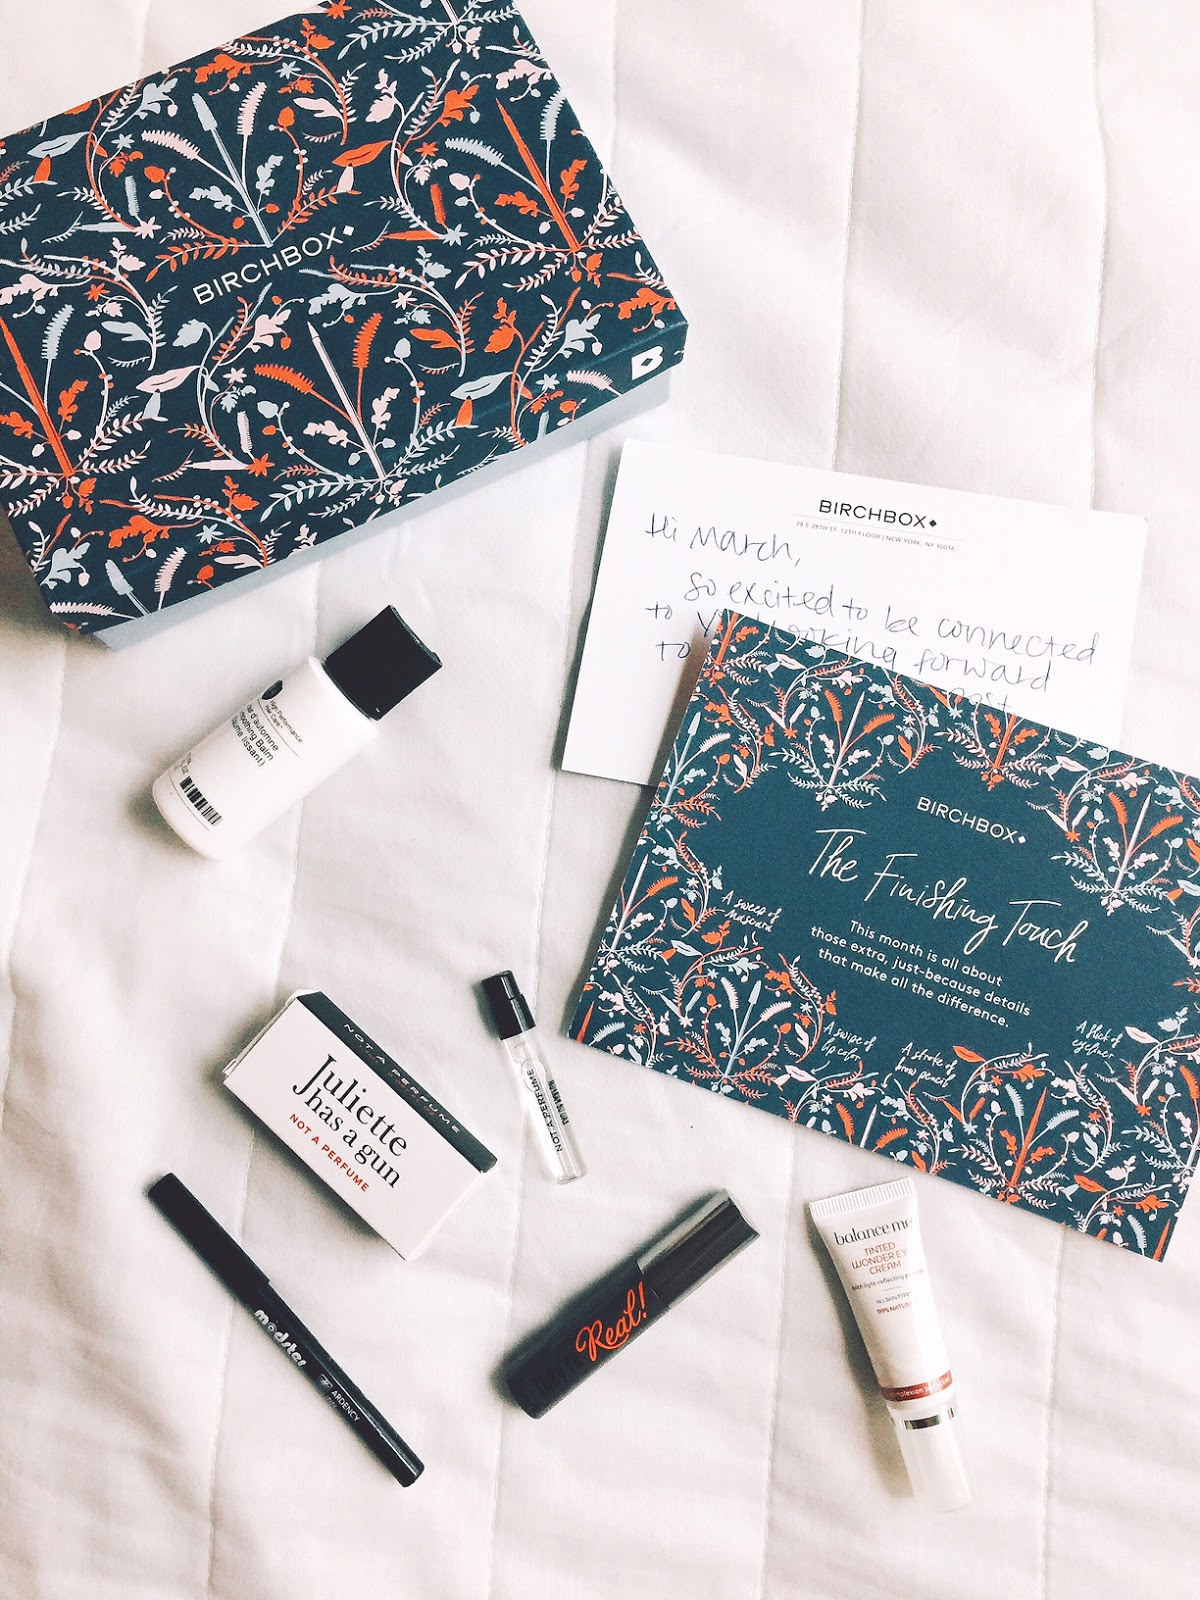 birchbox, beauty subscription, mail, shop style collective, fashion and lifestyle blogger,